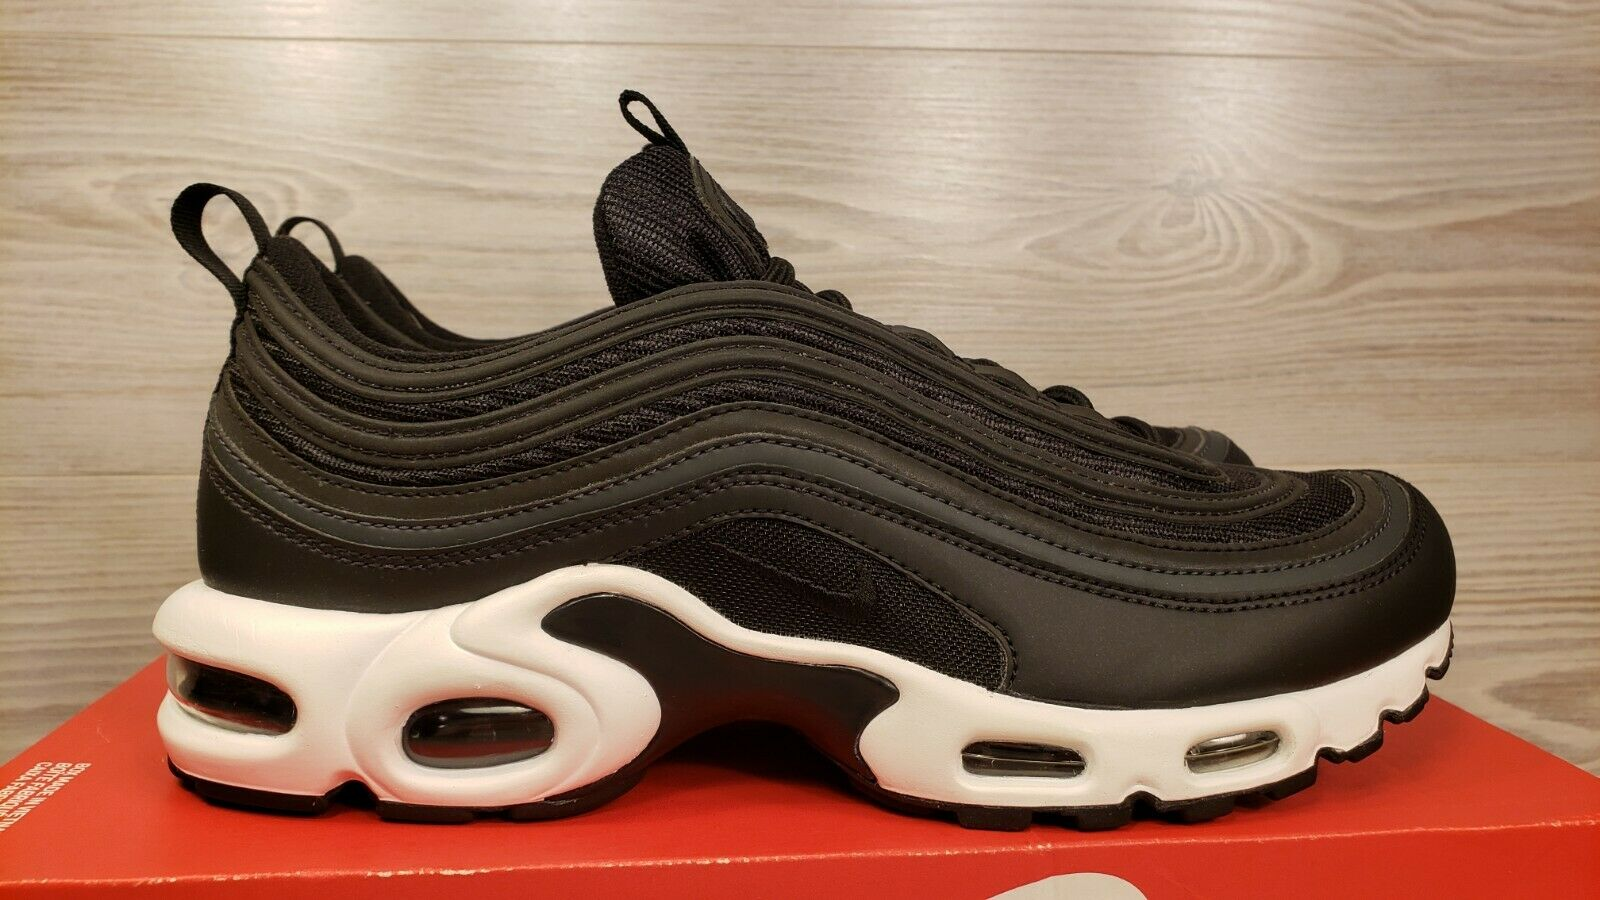 new products 83be0 1a479 NikeLab Air Max Plus 97 Am97 Anthracite Black White TN Air Ah8143 001 Size 9